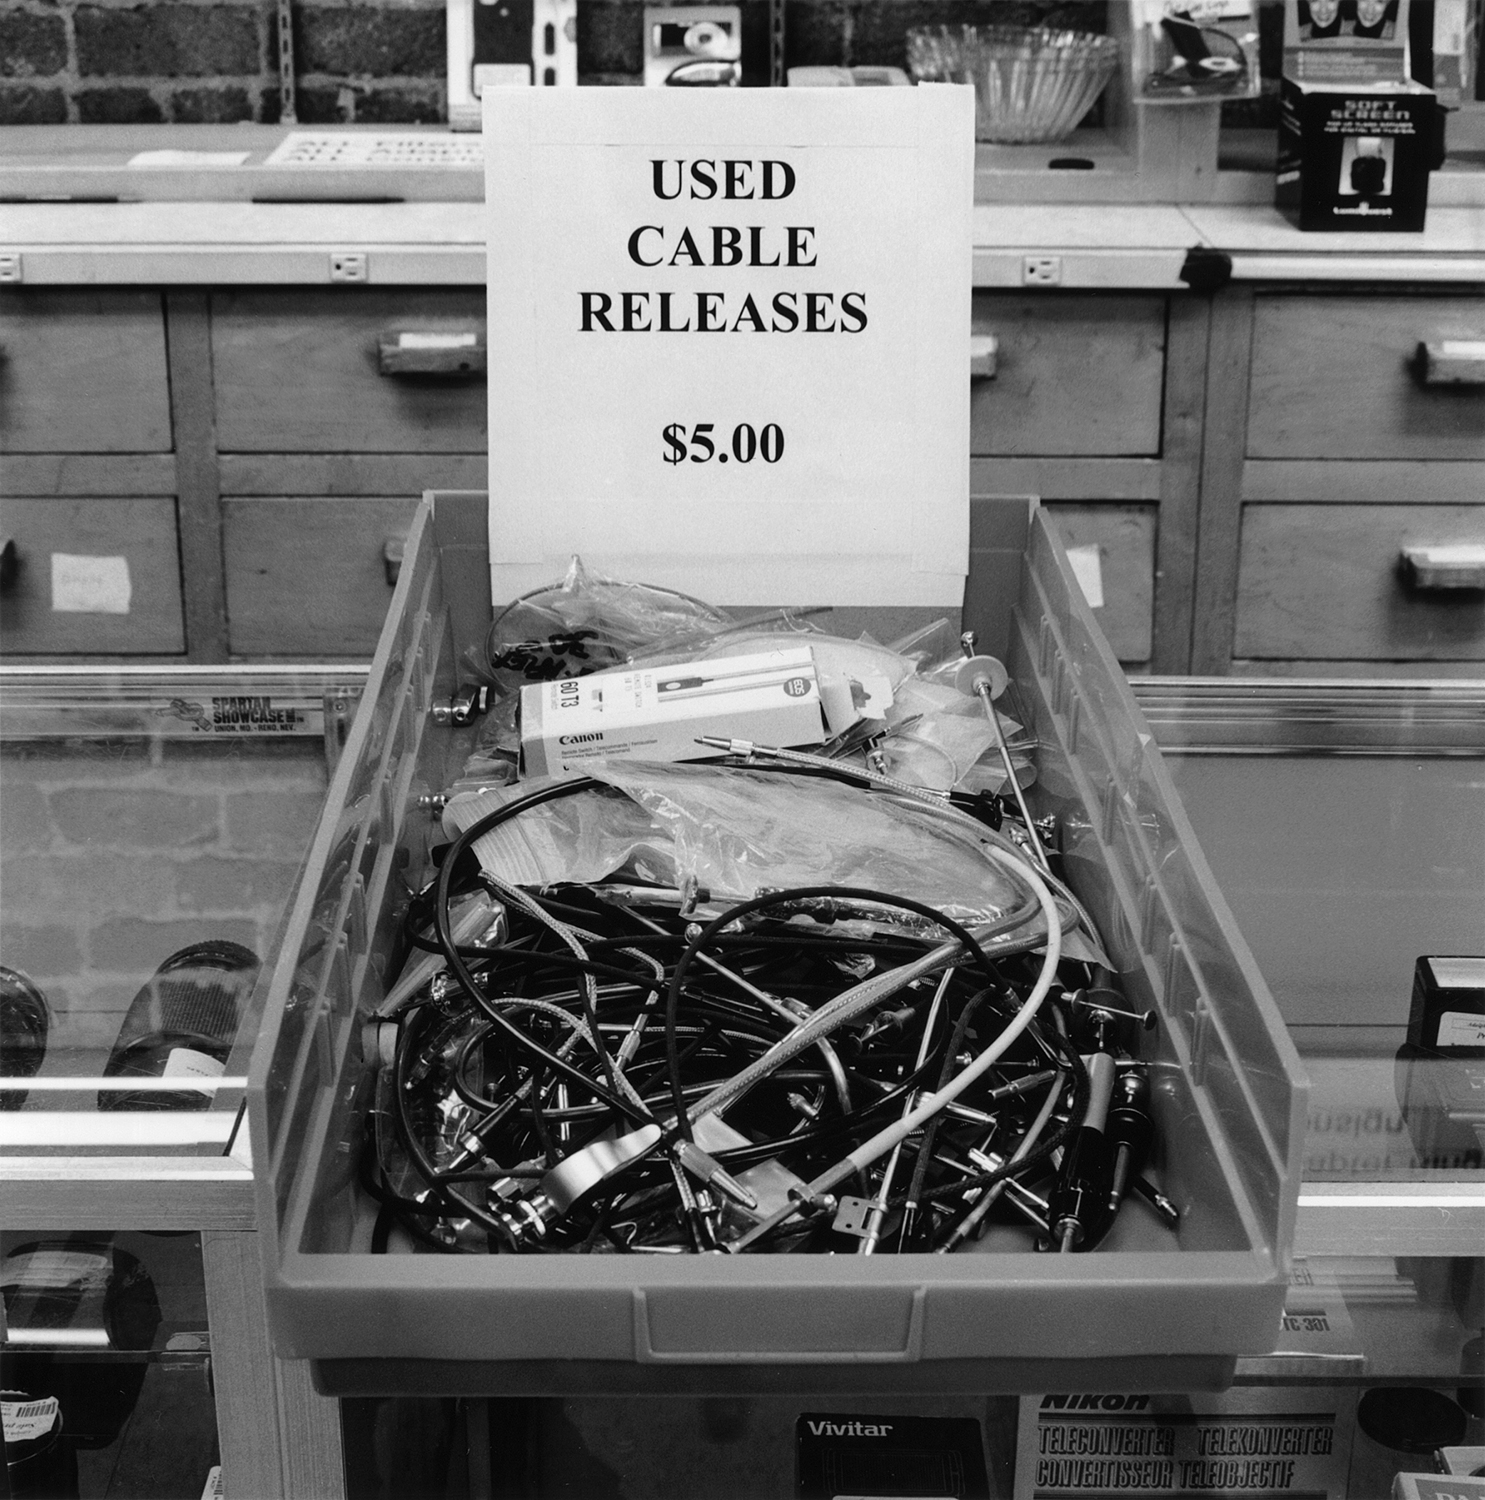 AdolphGassers-UsedCableReleases.jpg